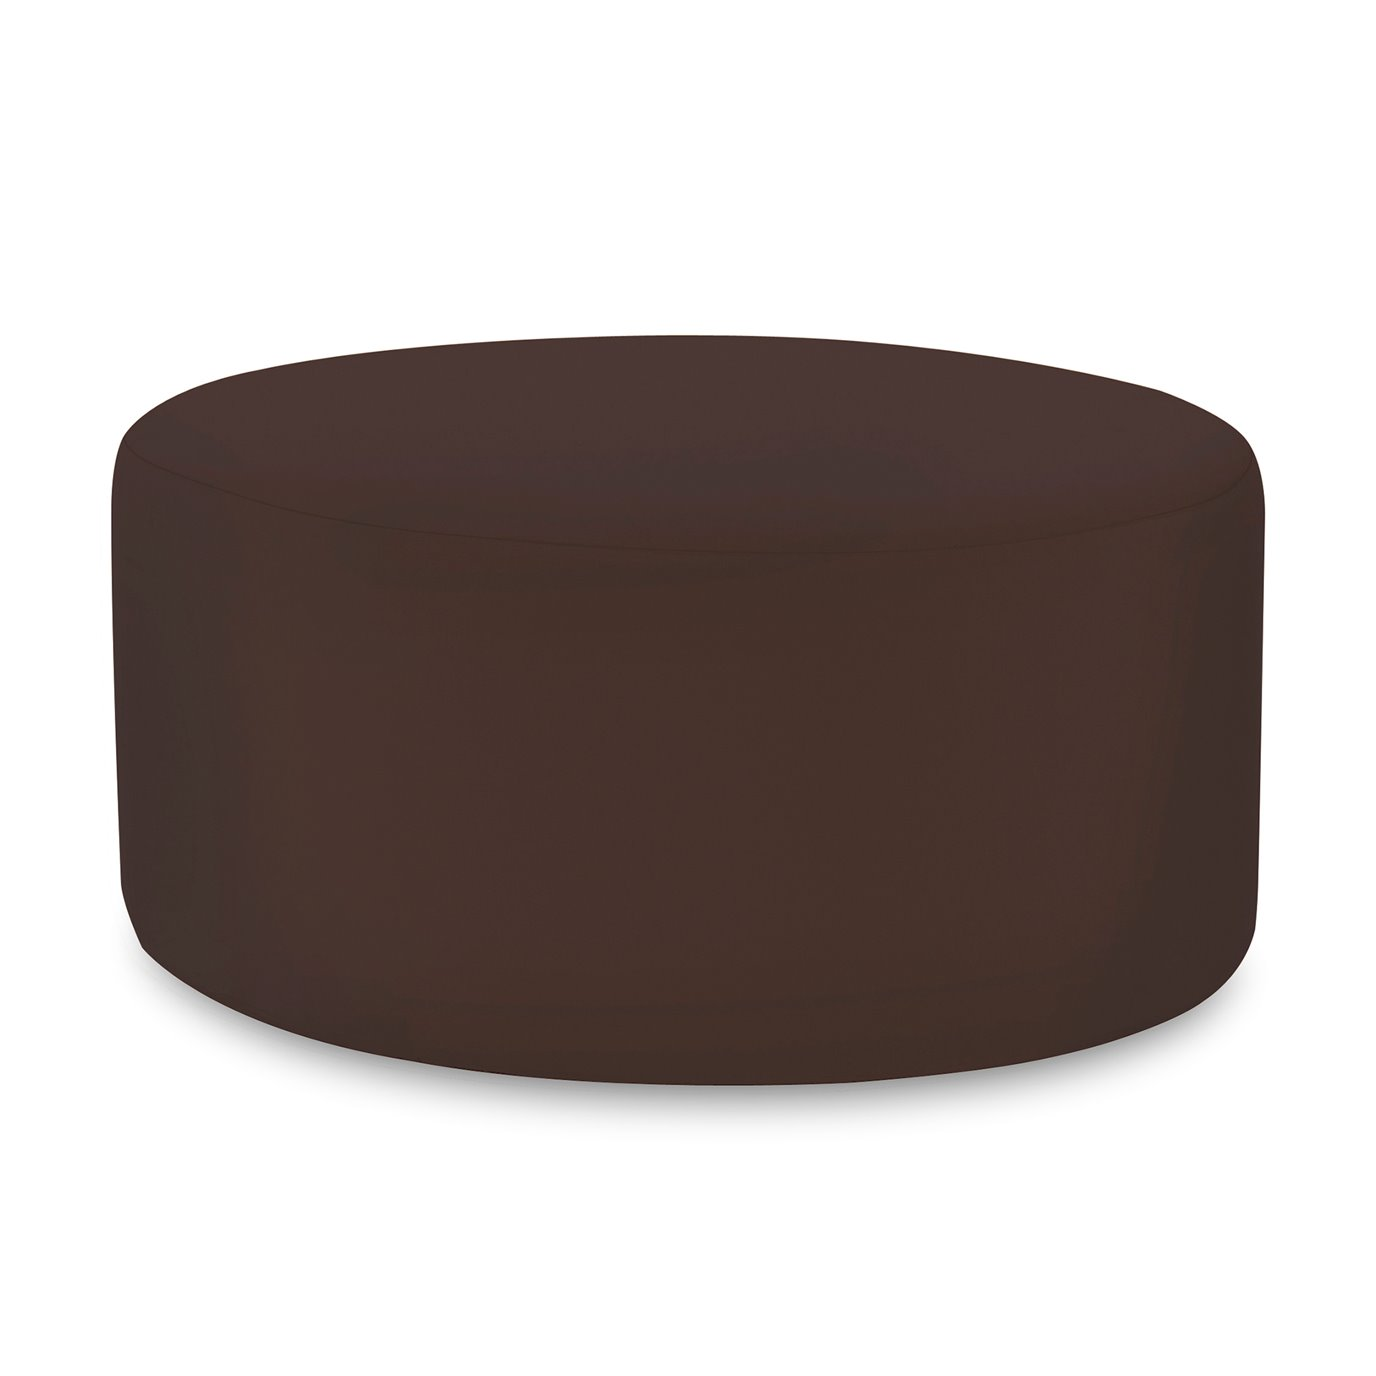 Howard Elliott Universal Round Ottoman Cover Sunbrella Outdoor Seascape Chocolate - Cover Only, Base Not Included